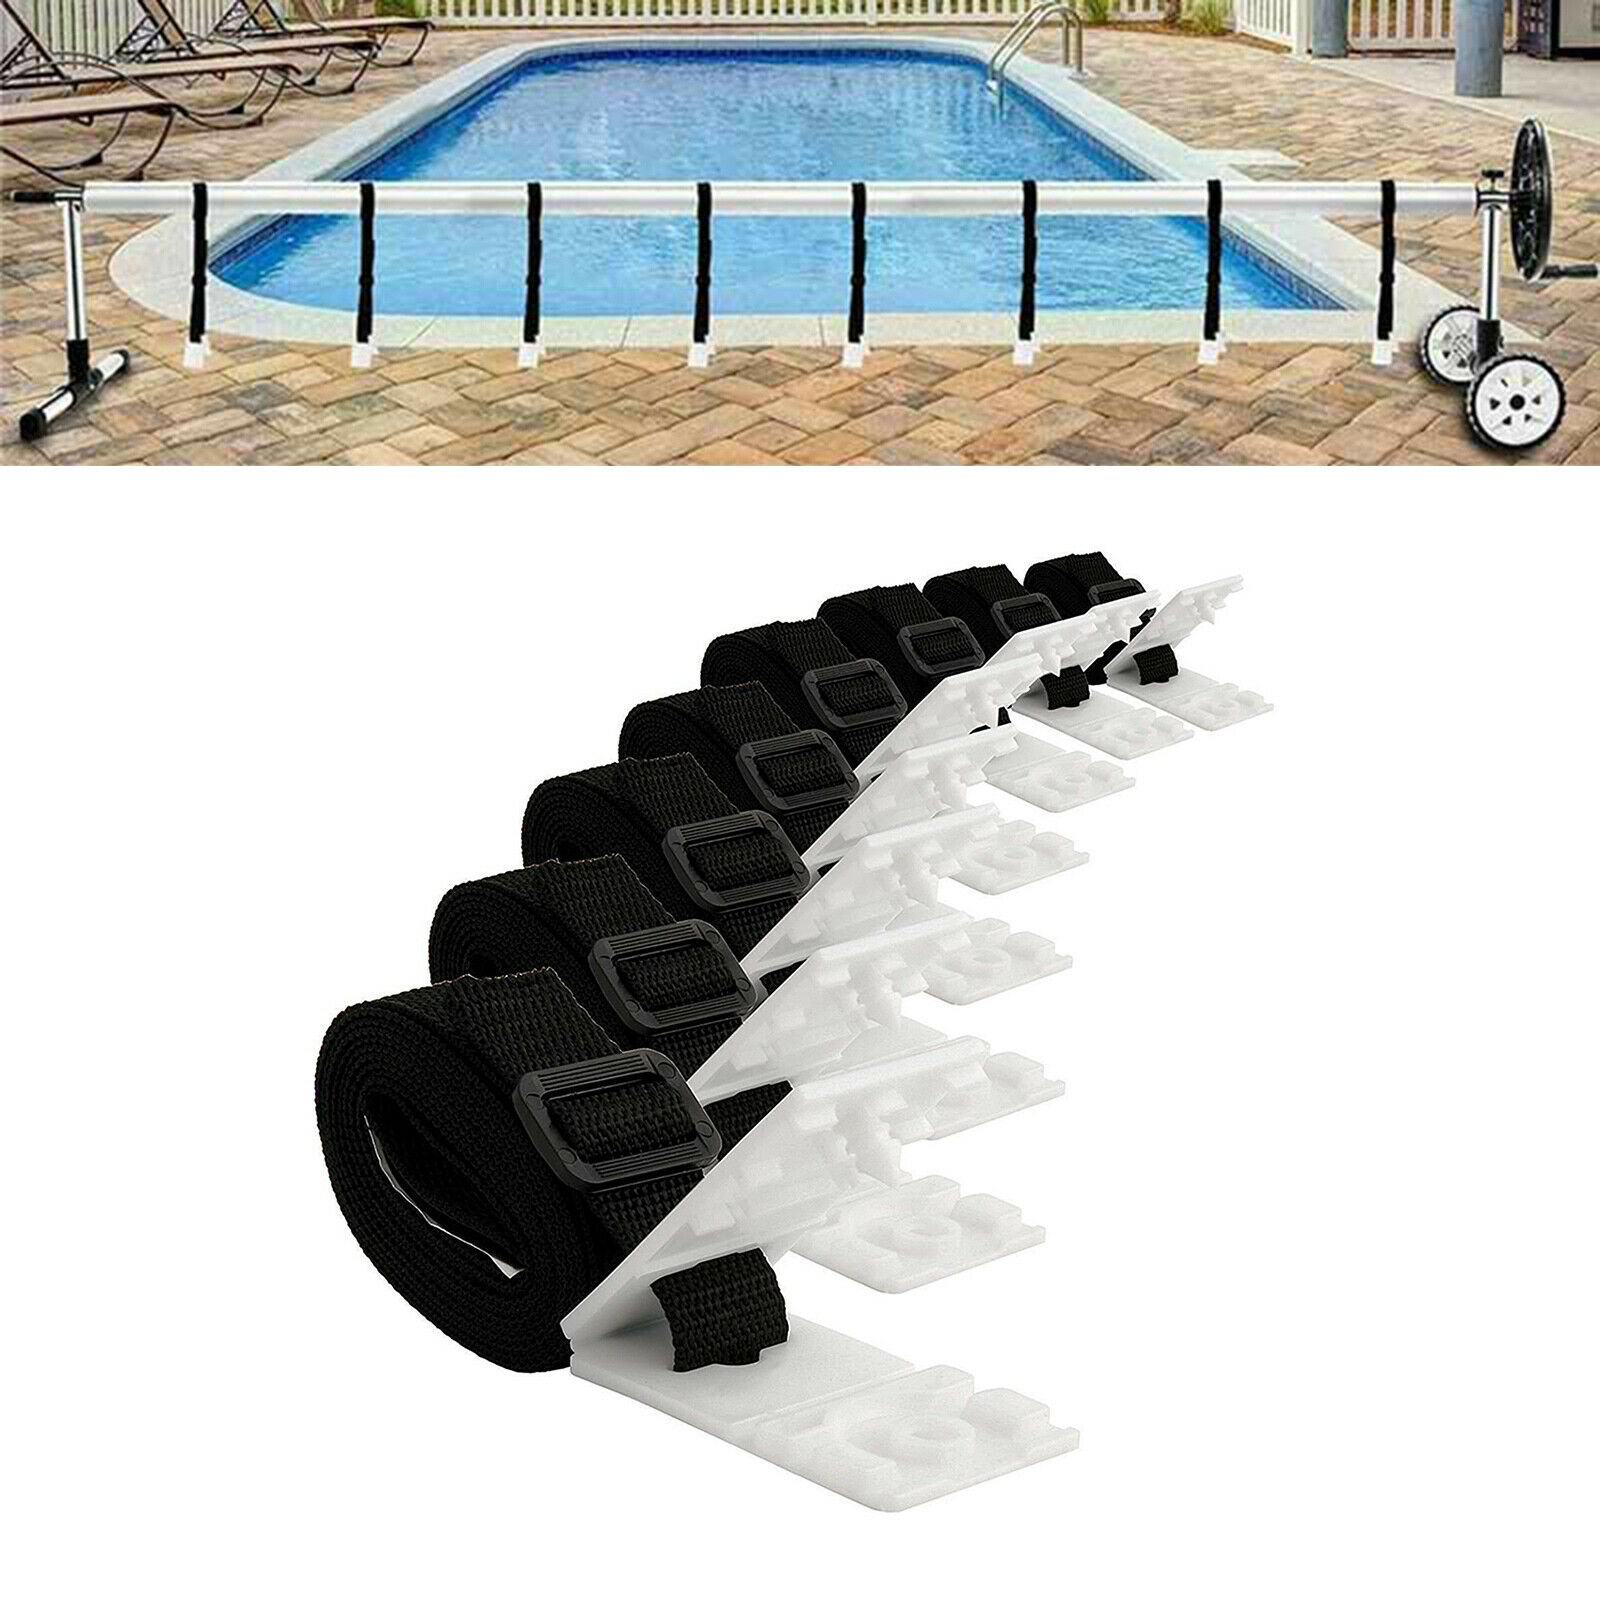 8x Pool Cover Roller Attachment Kit Easy and Convenient to Install and Use